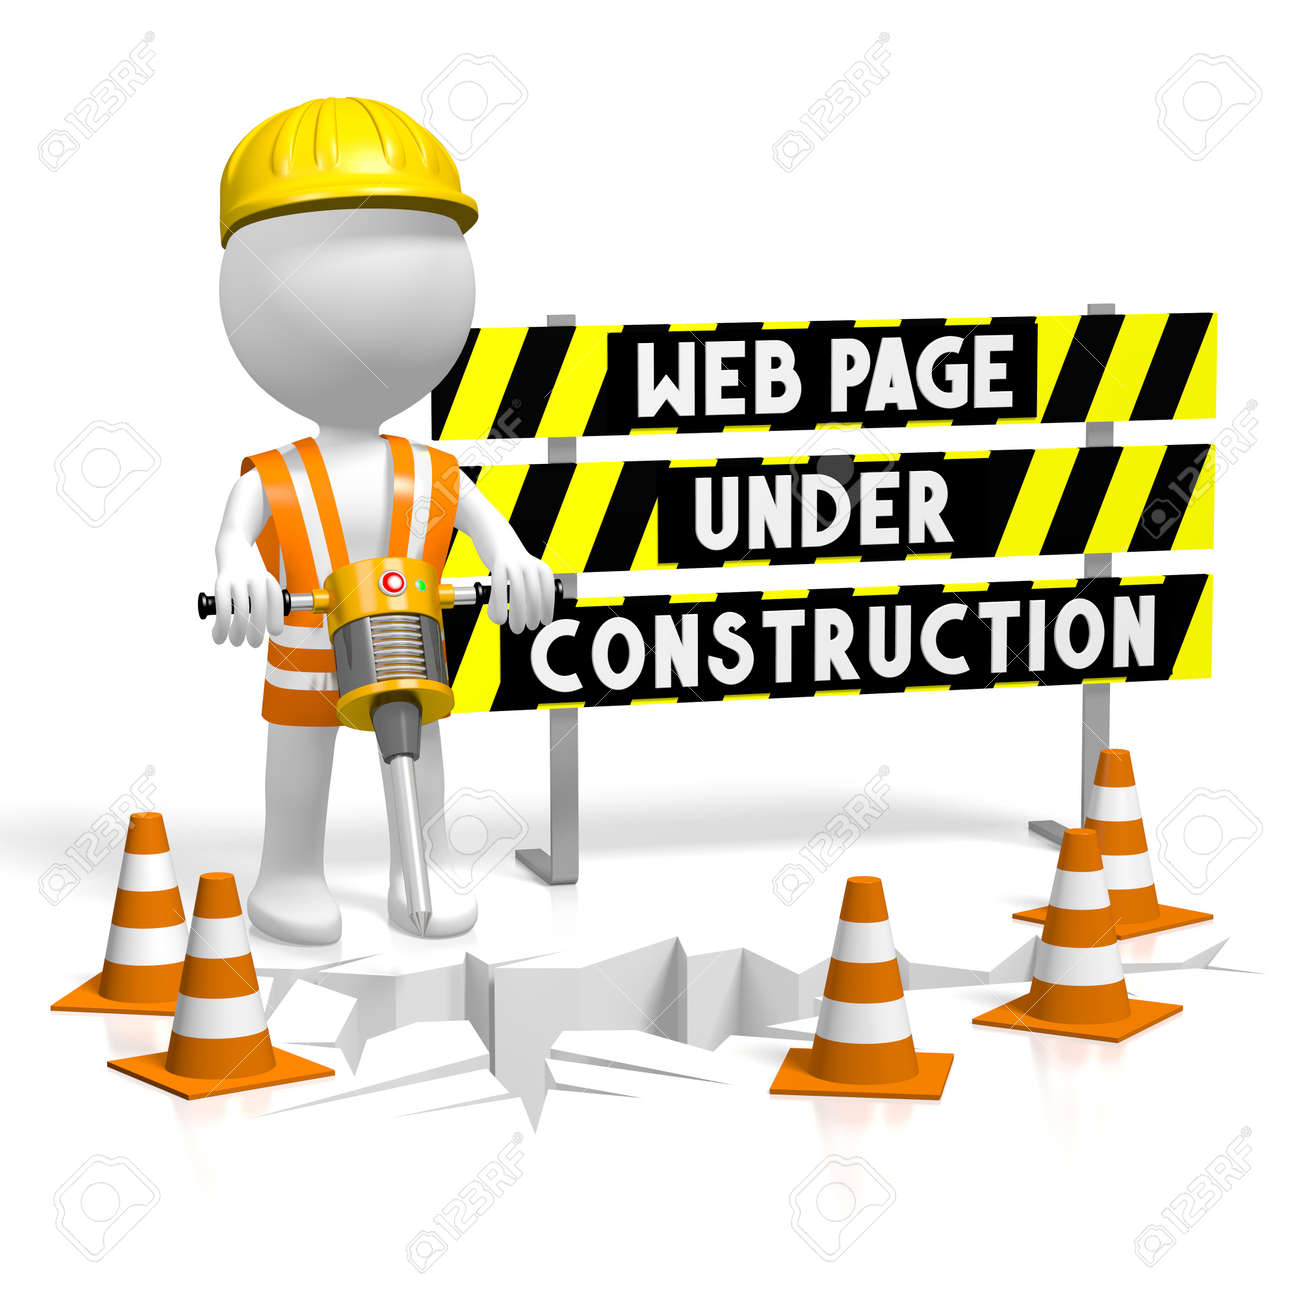 Image result for web page under construction image